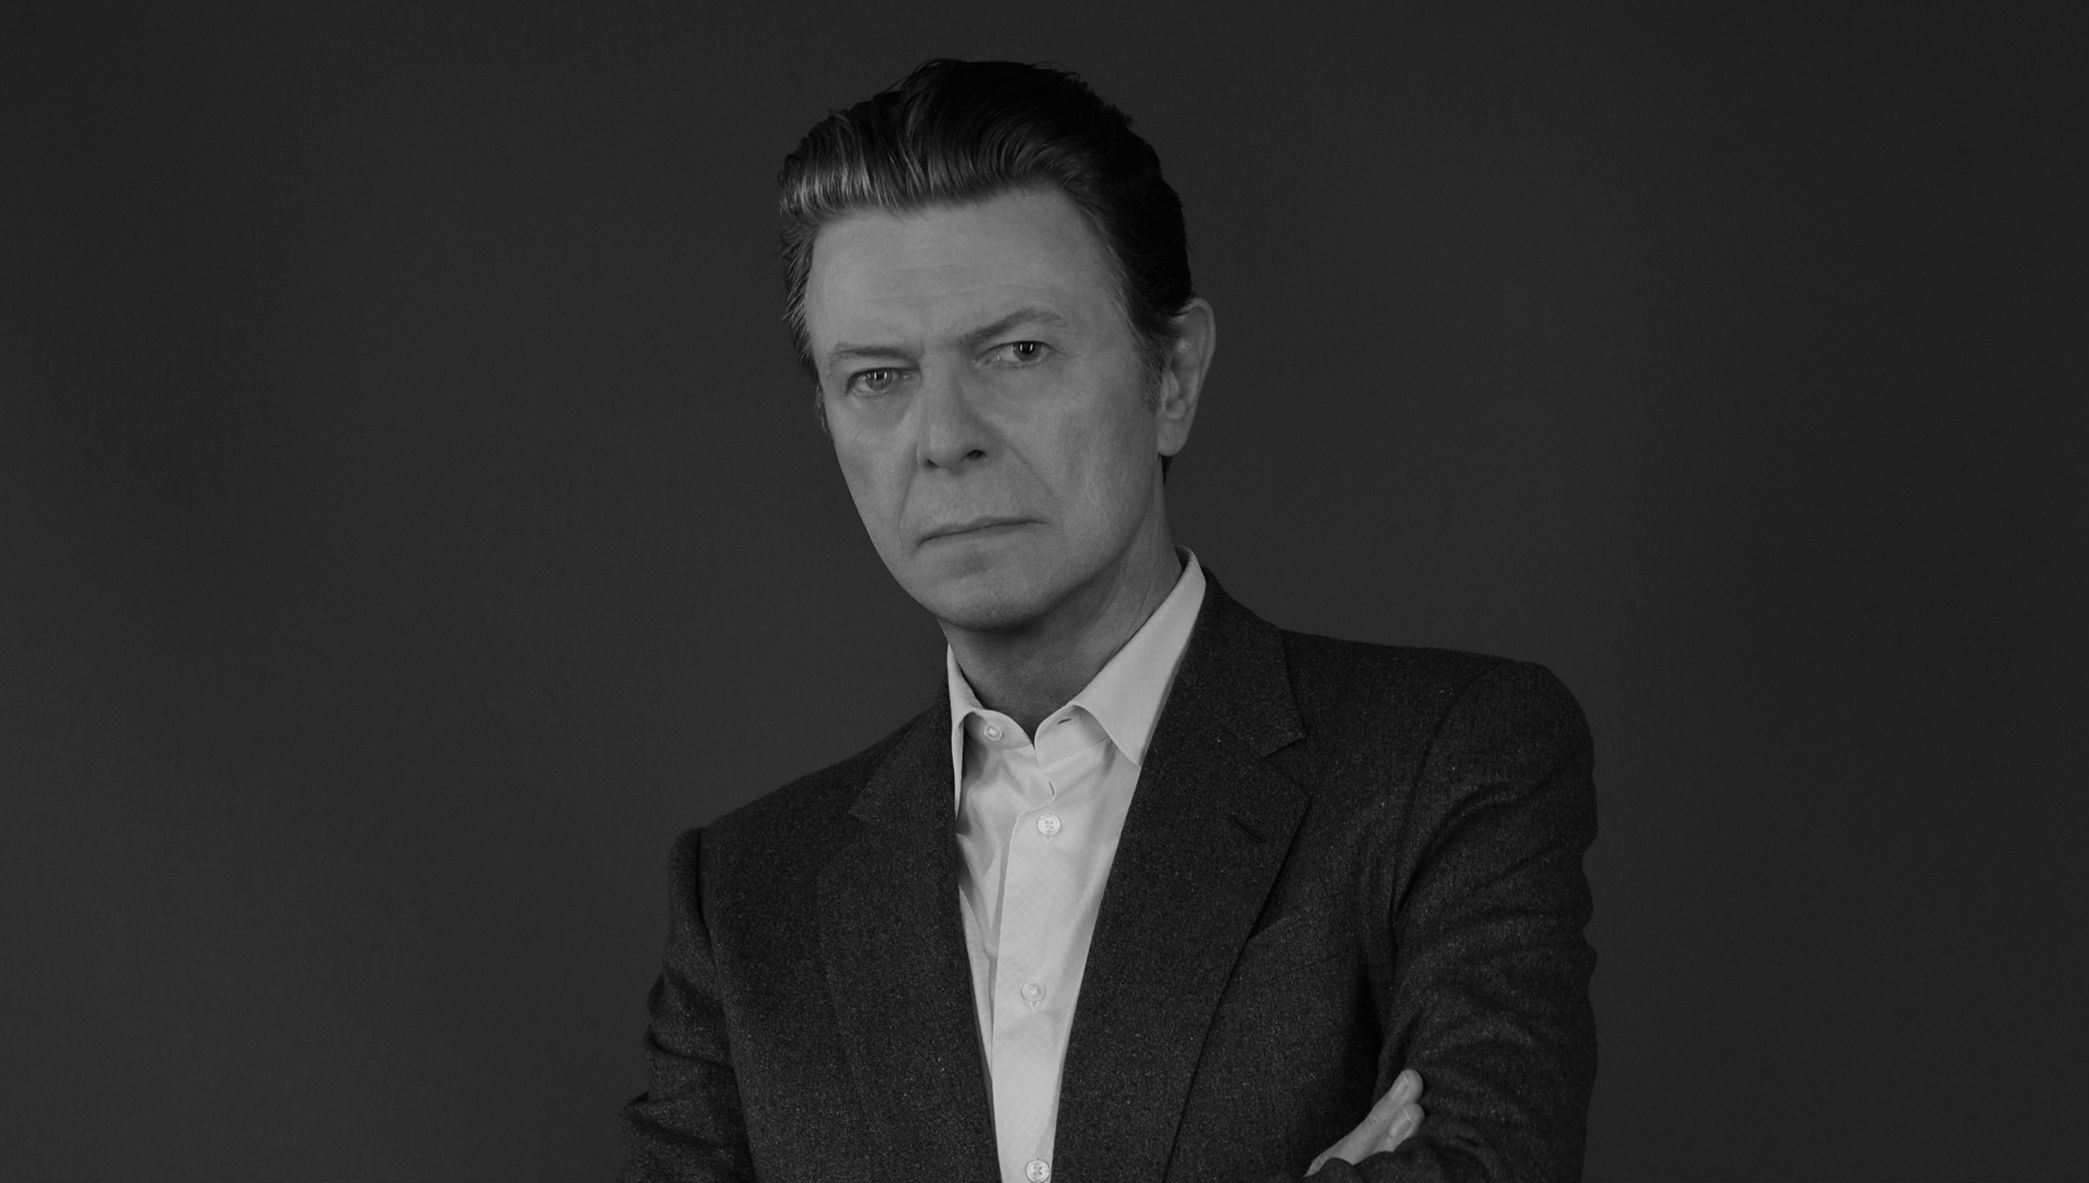 David Bowie Wallpapers Images Photos Pictures Backgrounds